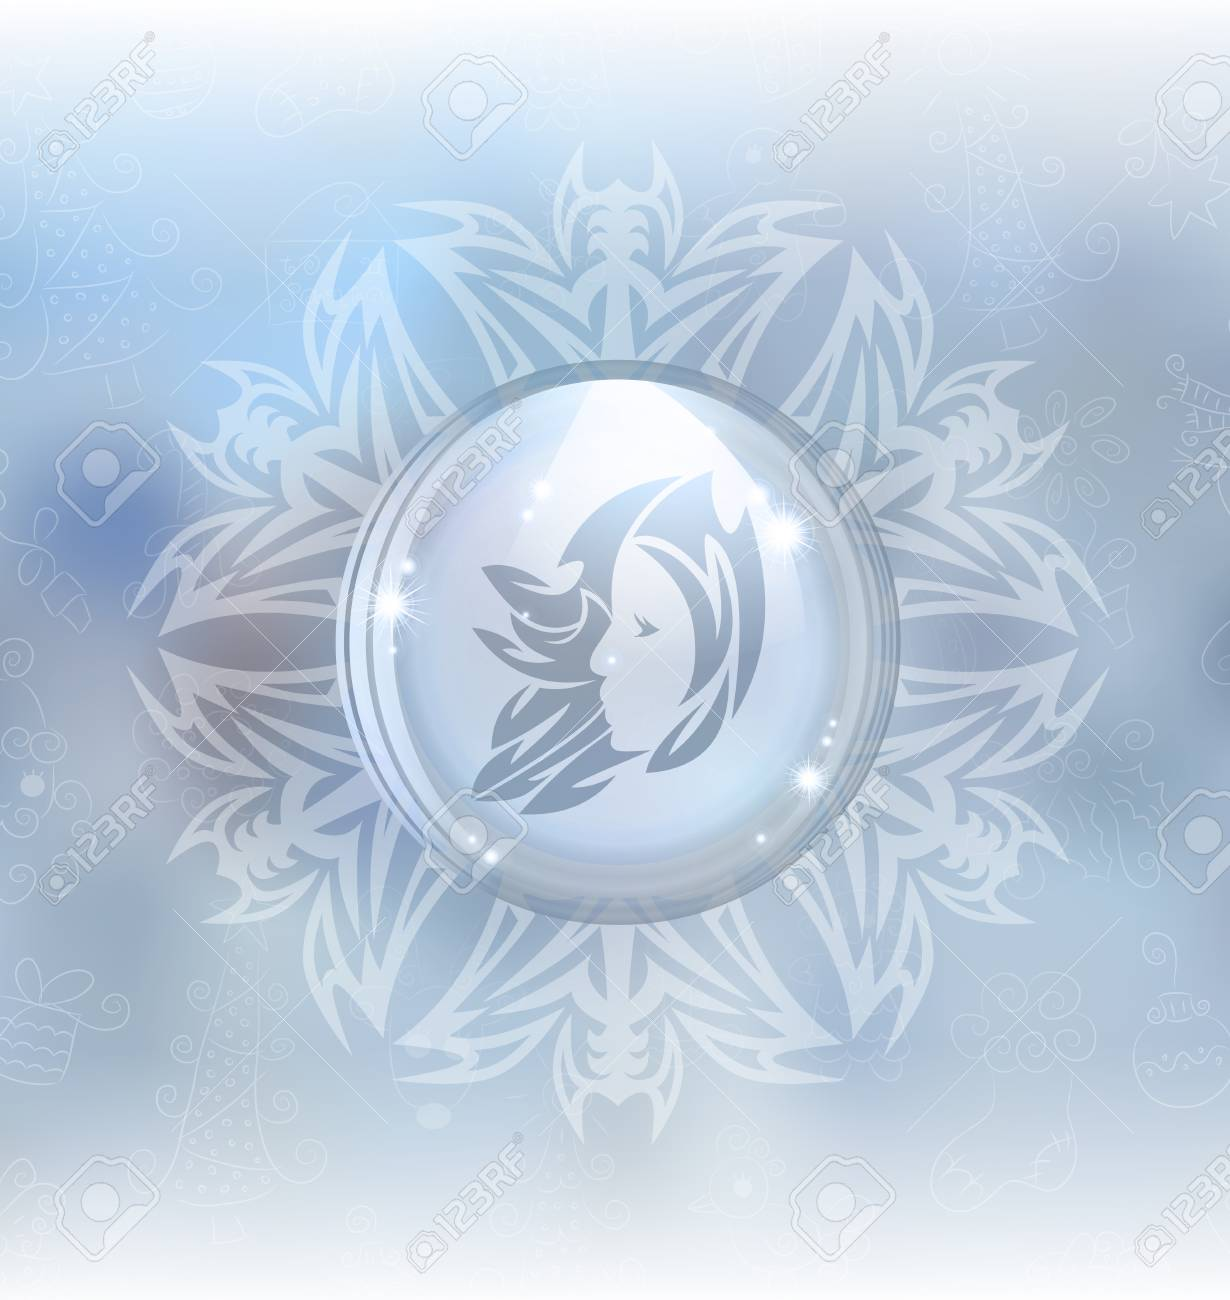 A Vector Illustration Of A Transparent Snow Globe In A Snowflake ...